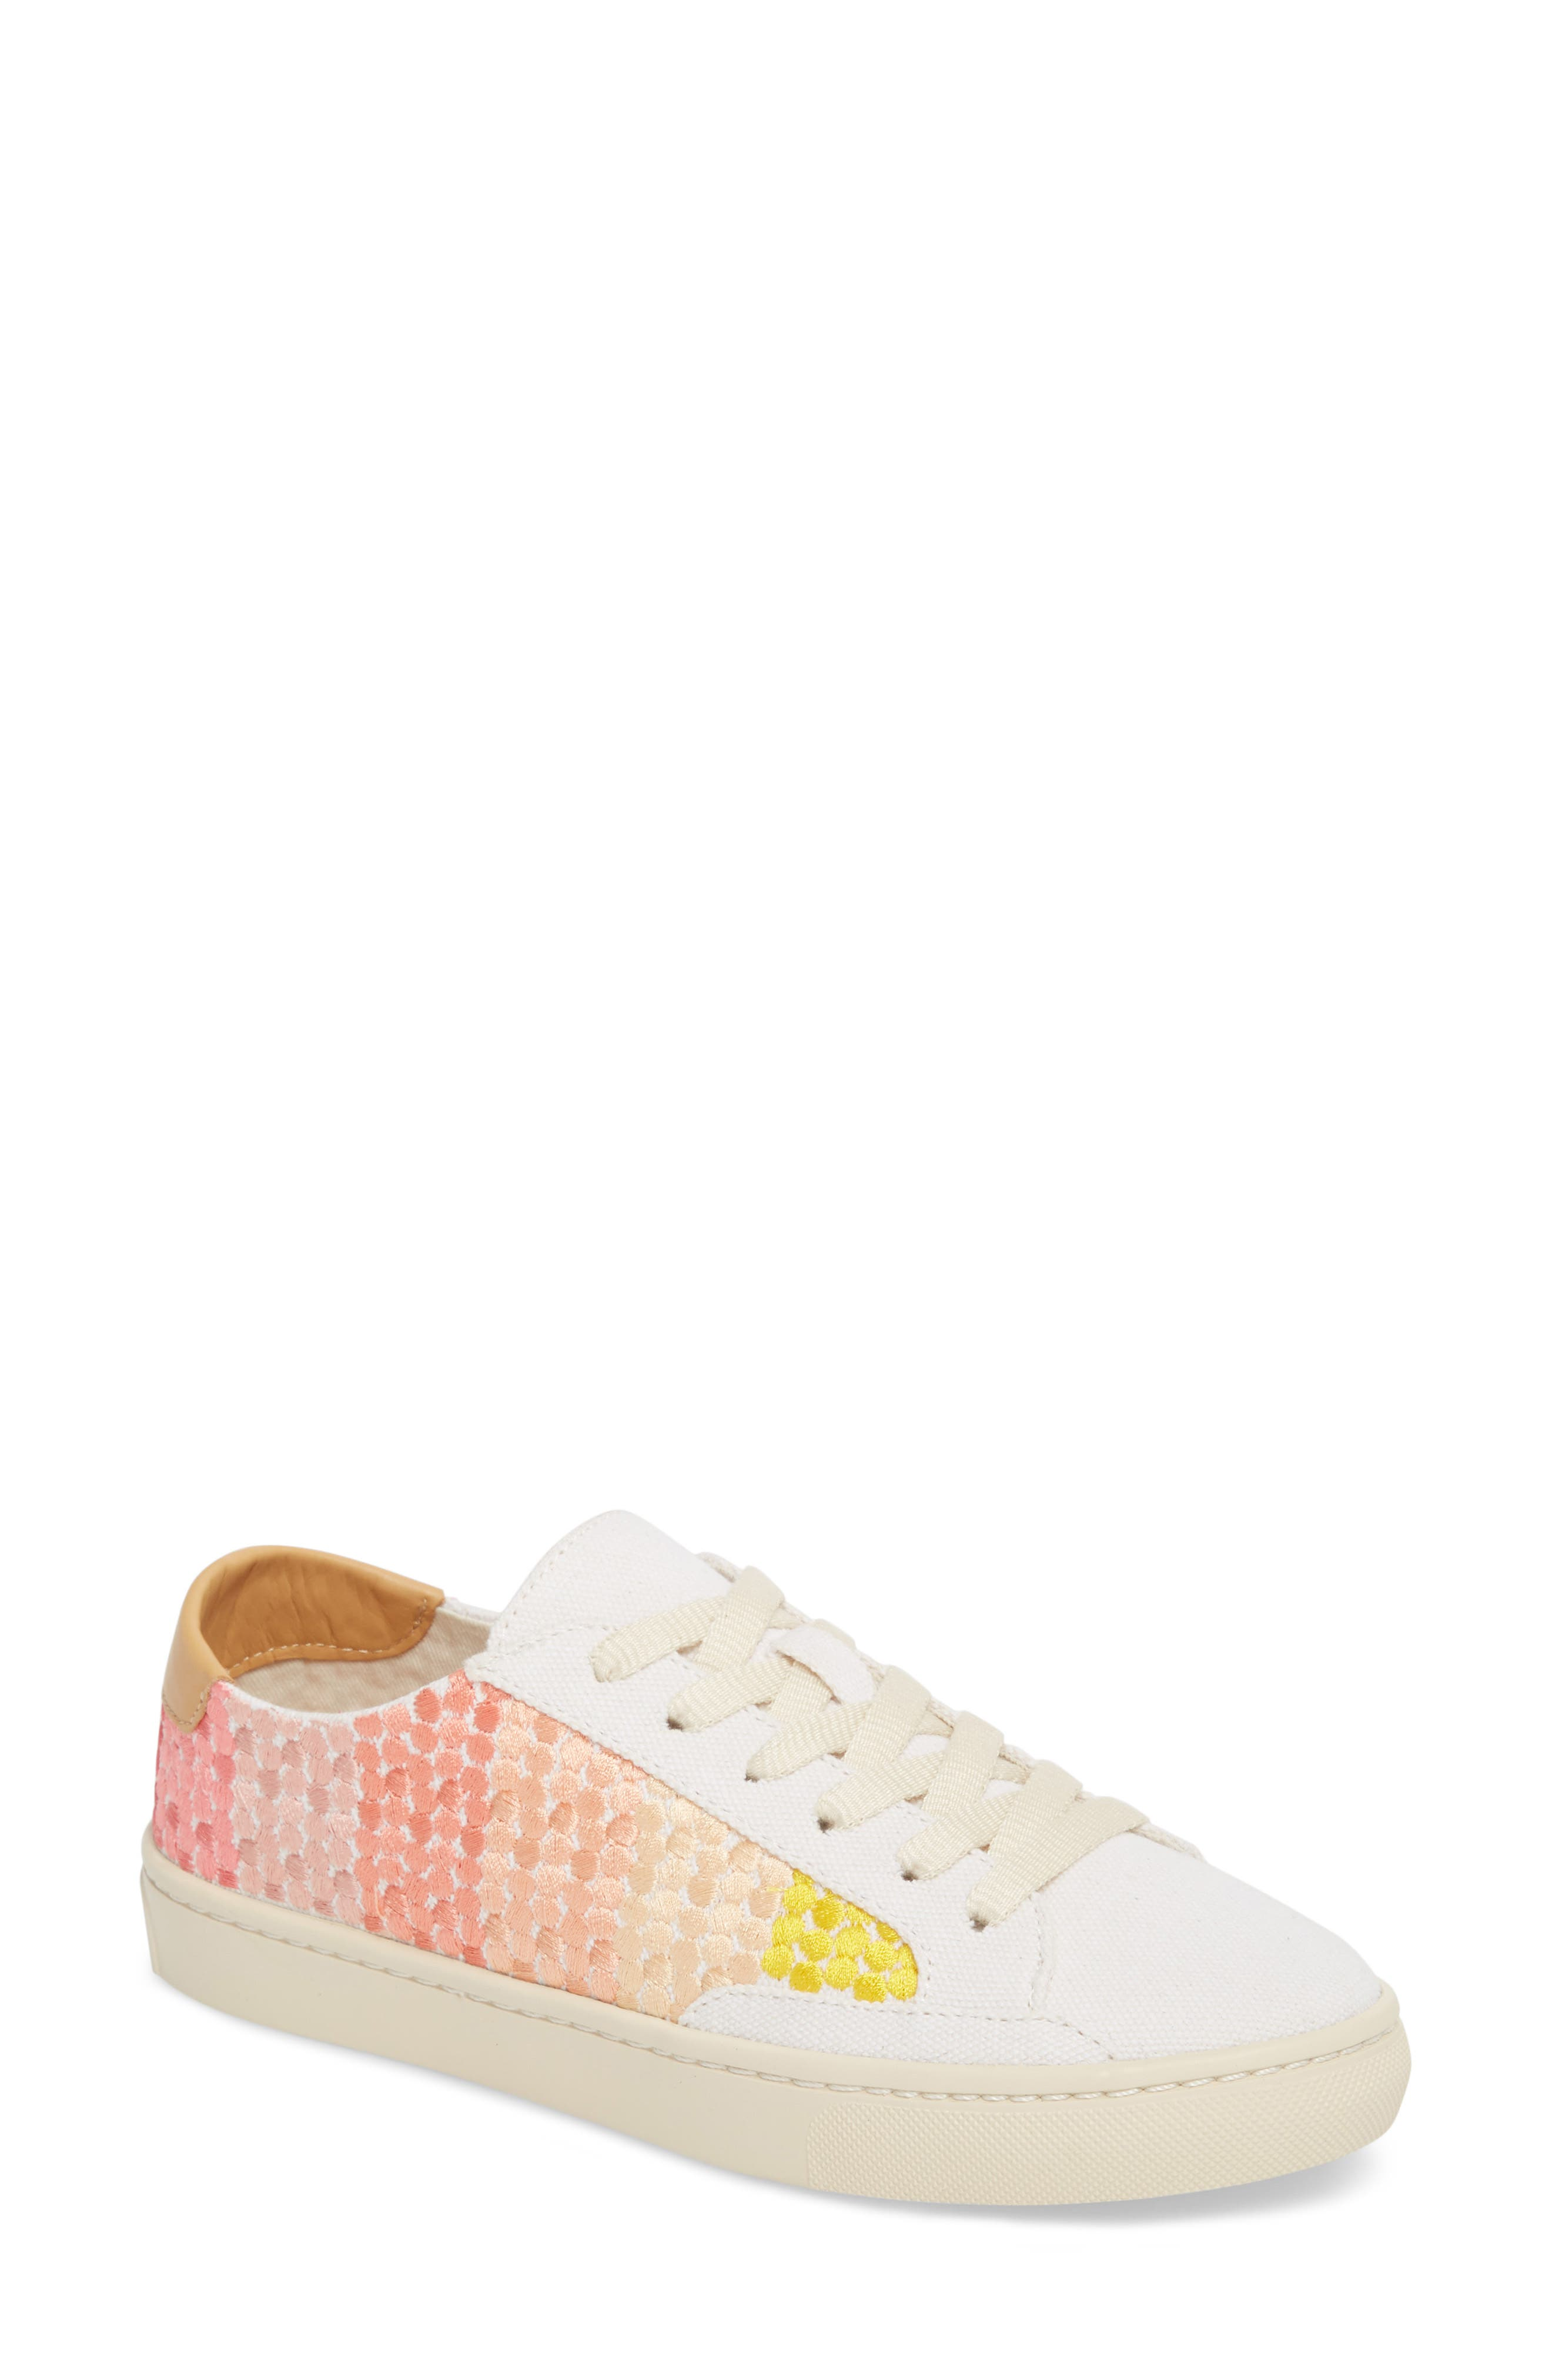 Embroidered Ombre Sneaker,                             Main thumbnail 1, color,